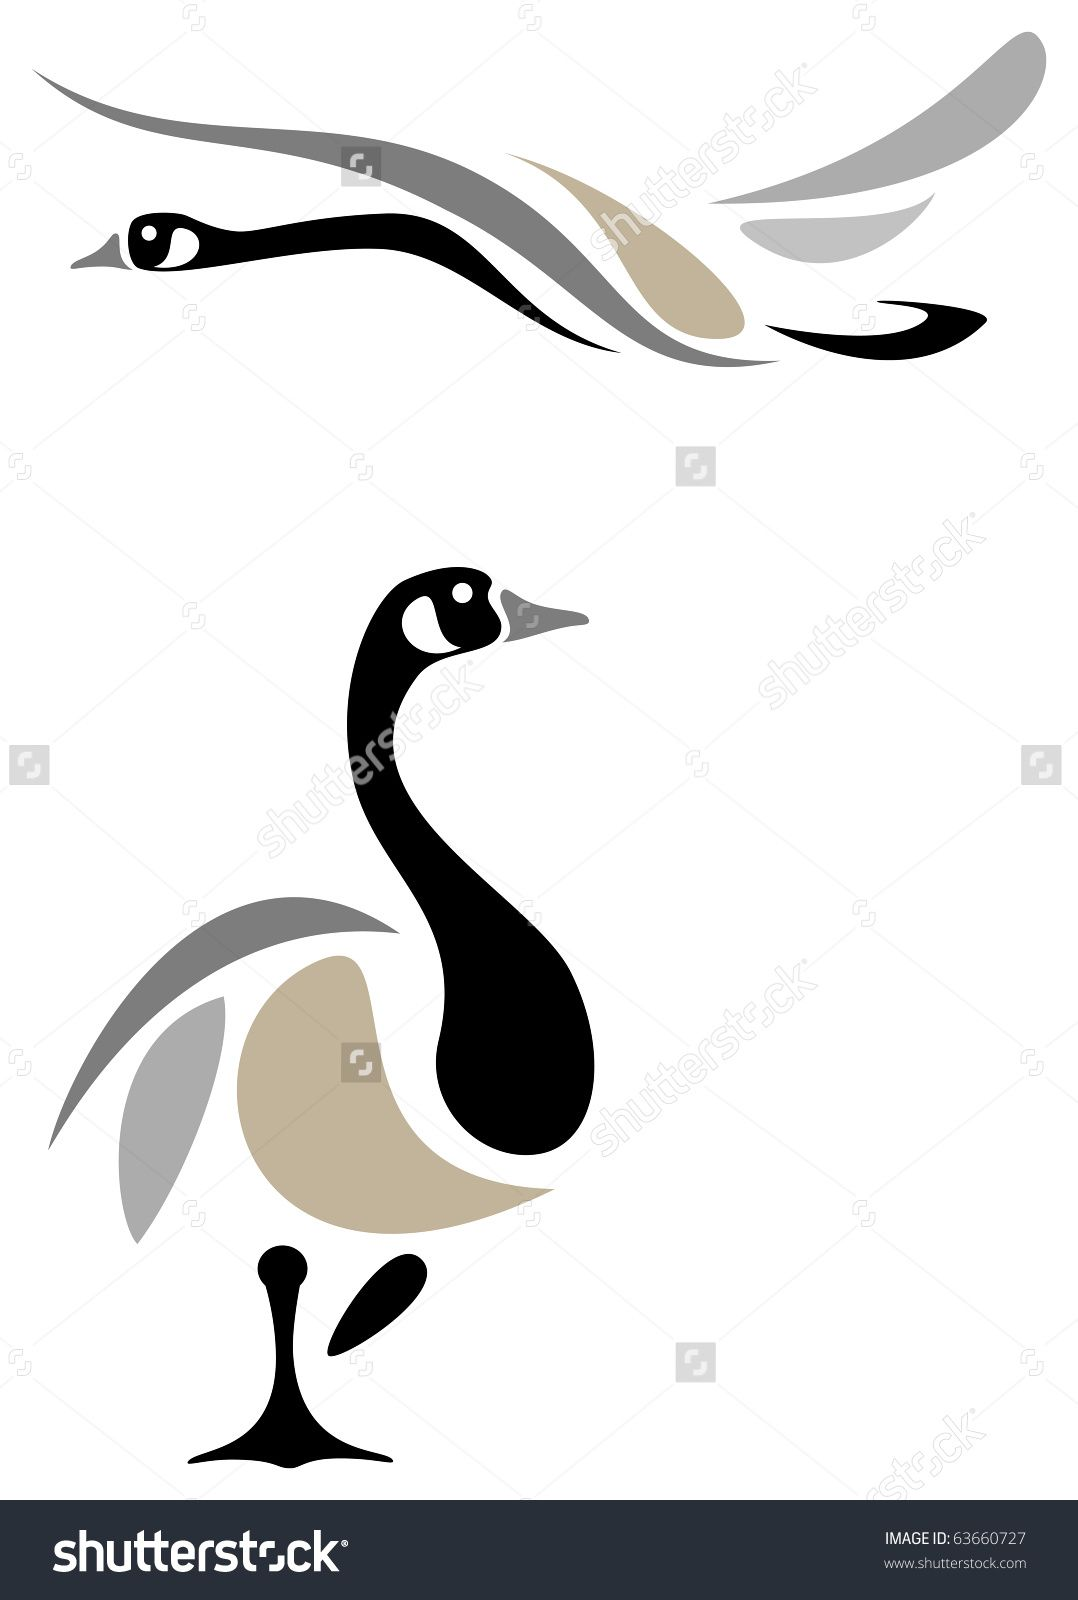 Pin by theresa gonzales. Goose clipart canada goose